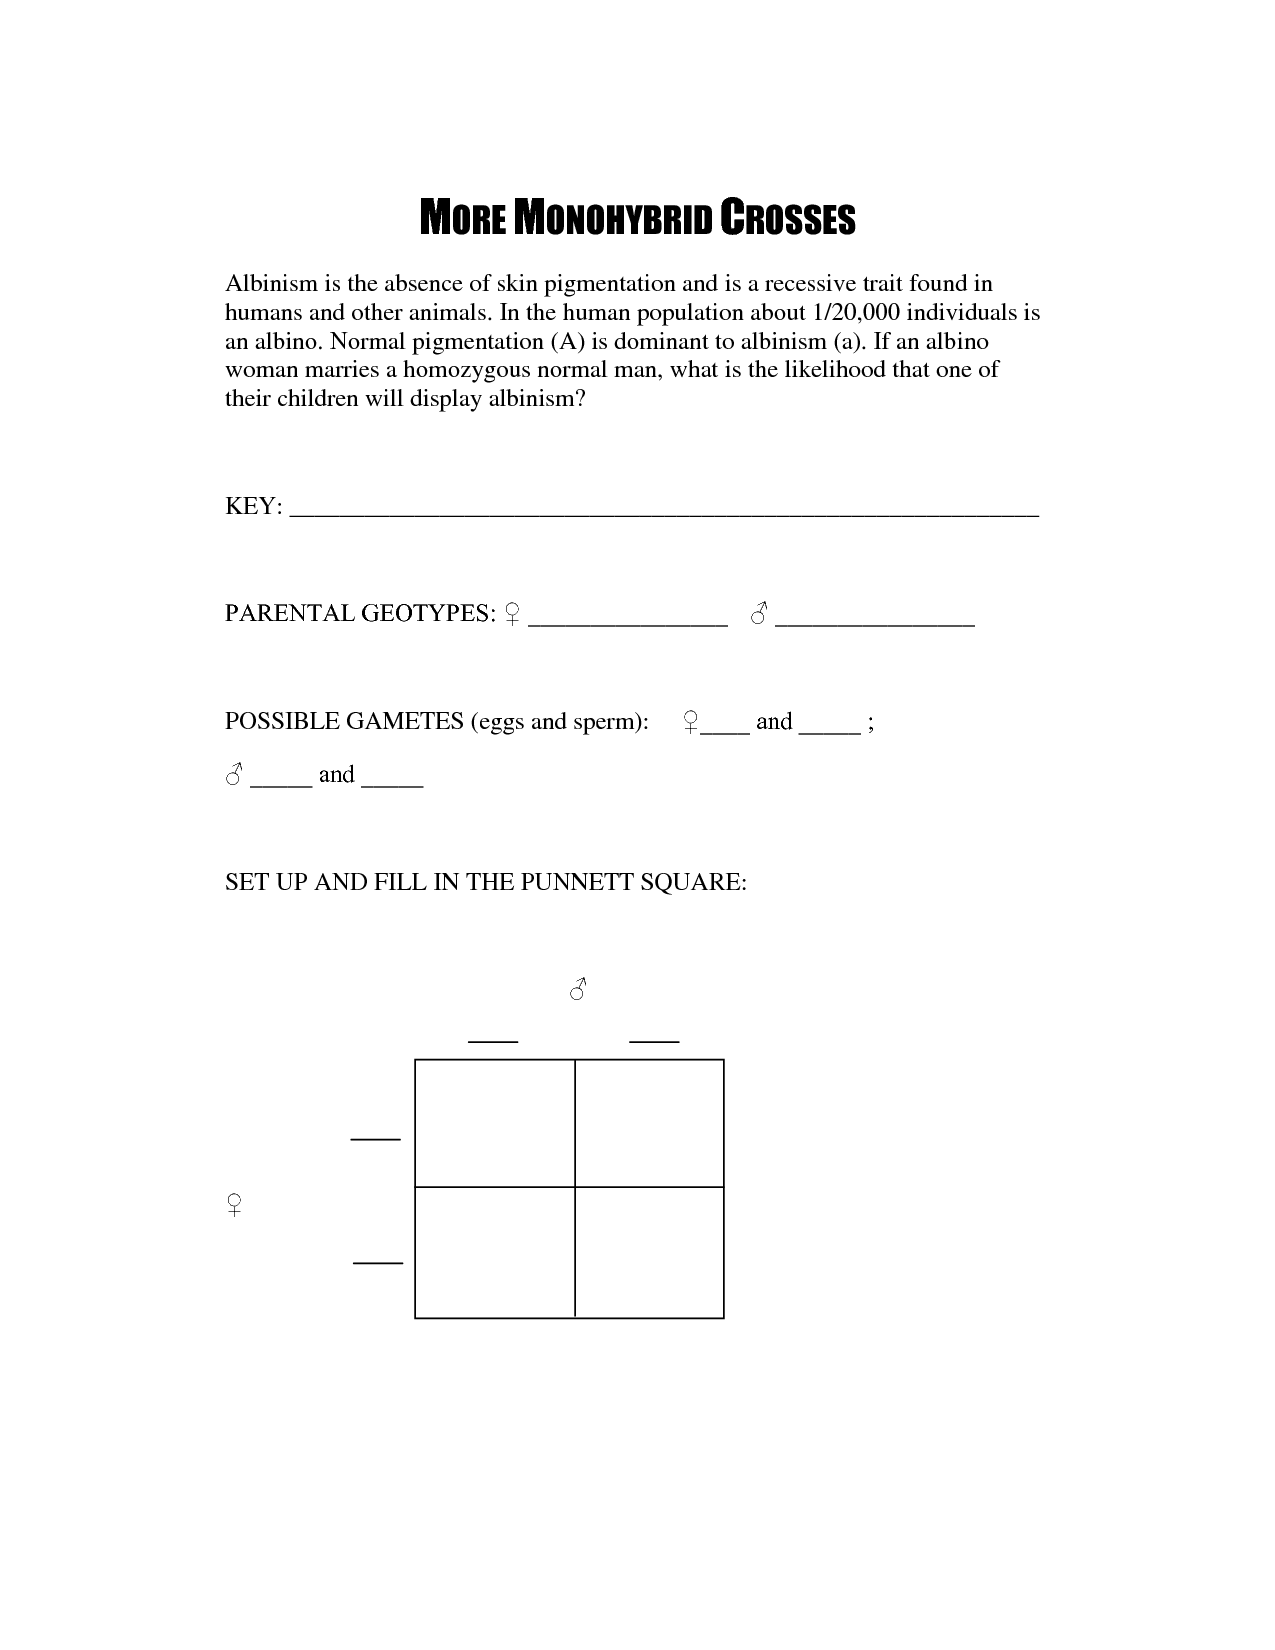 Dihybrid Cross Punnett Square Practice Worksheet